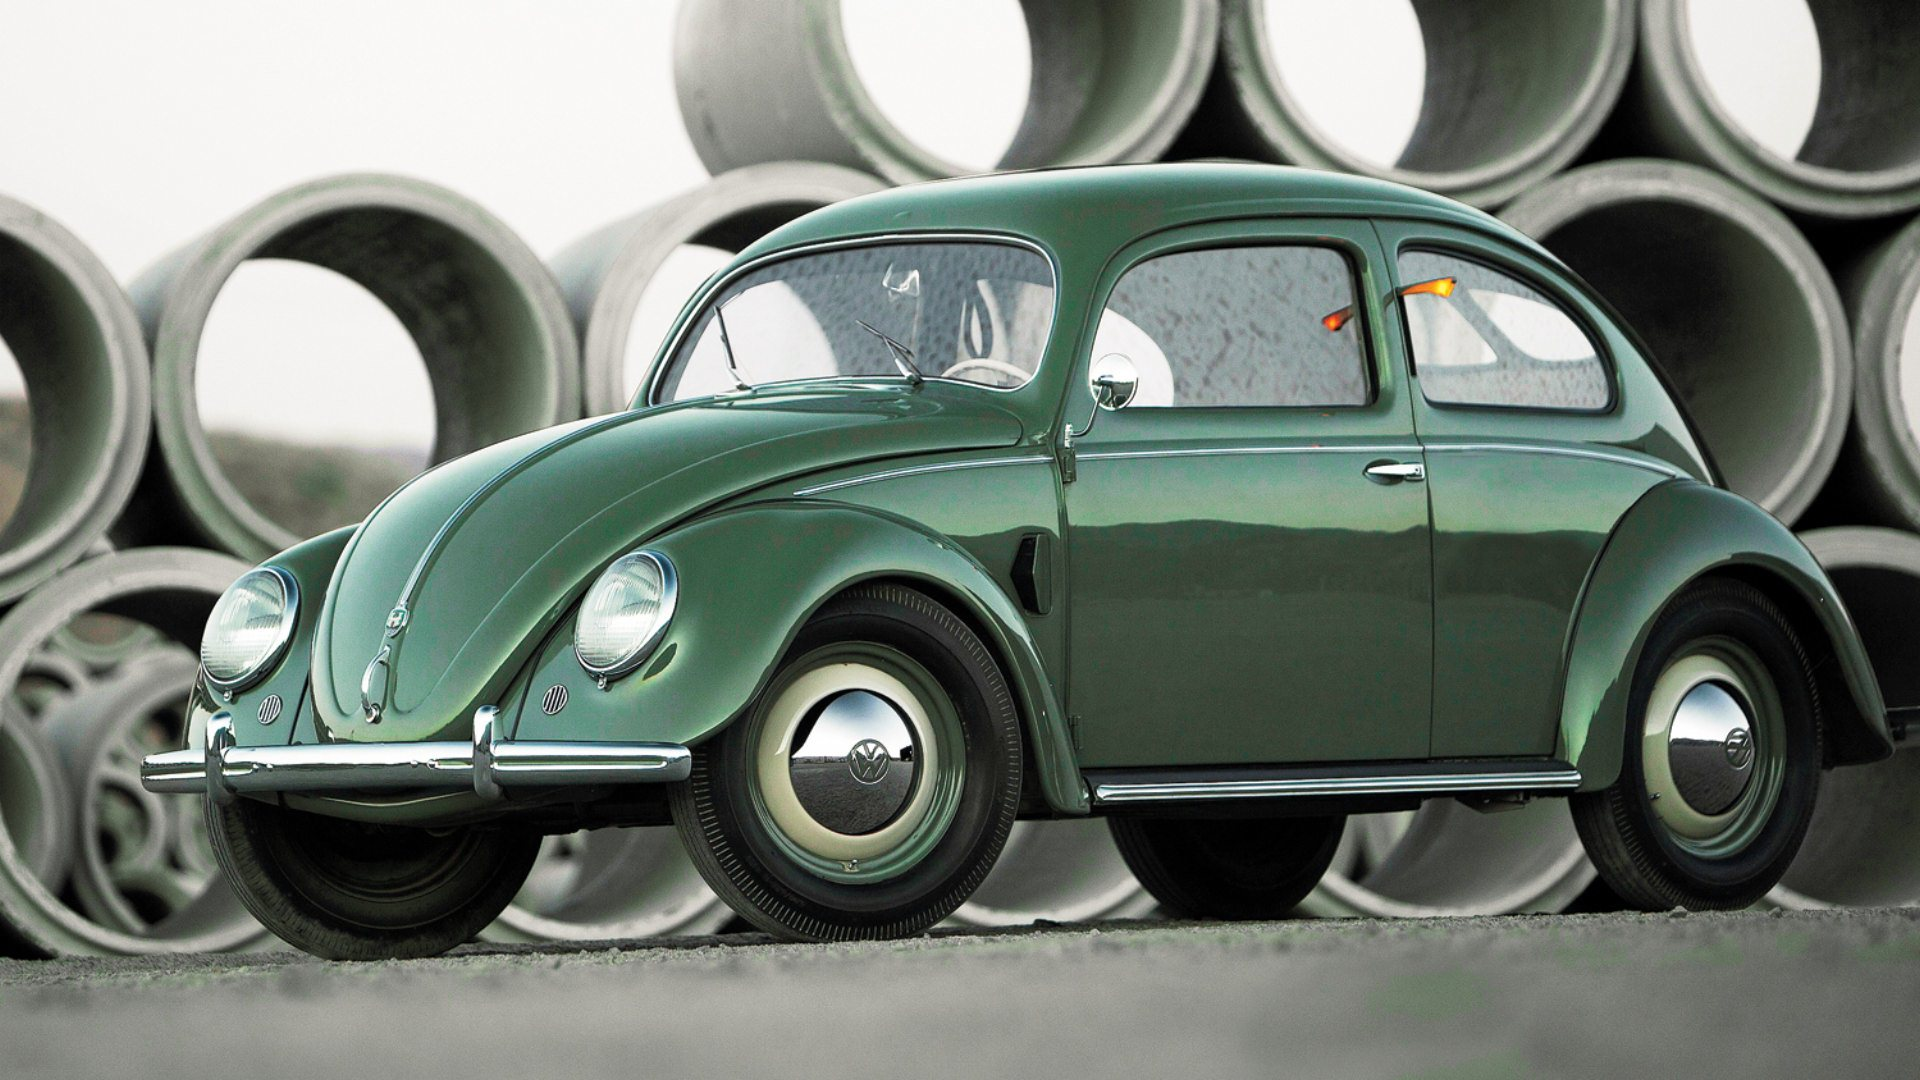 Description Volkswagen Beetle classic is a hi res Wallpaper for pc 1920x1080